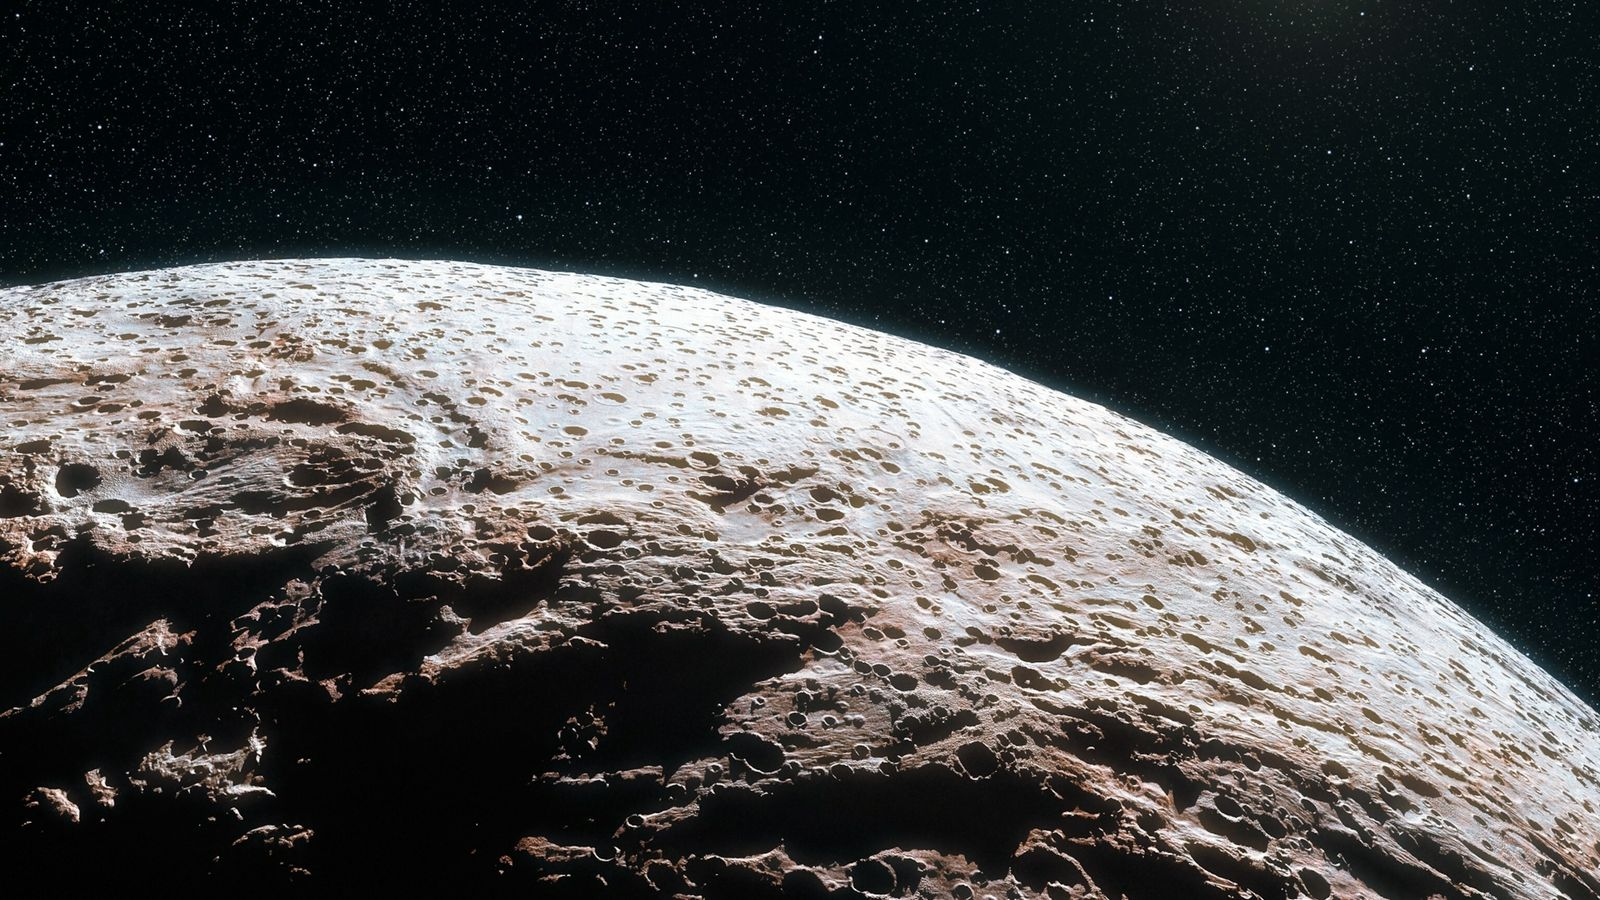 dwarf planet with no atmosphere makemake